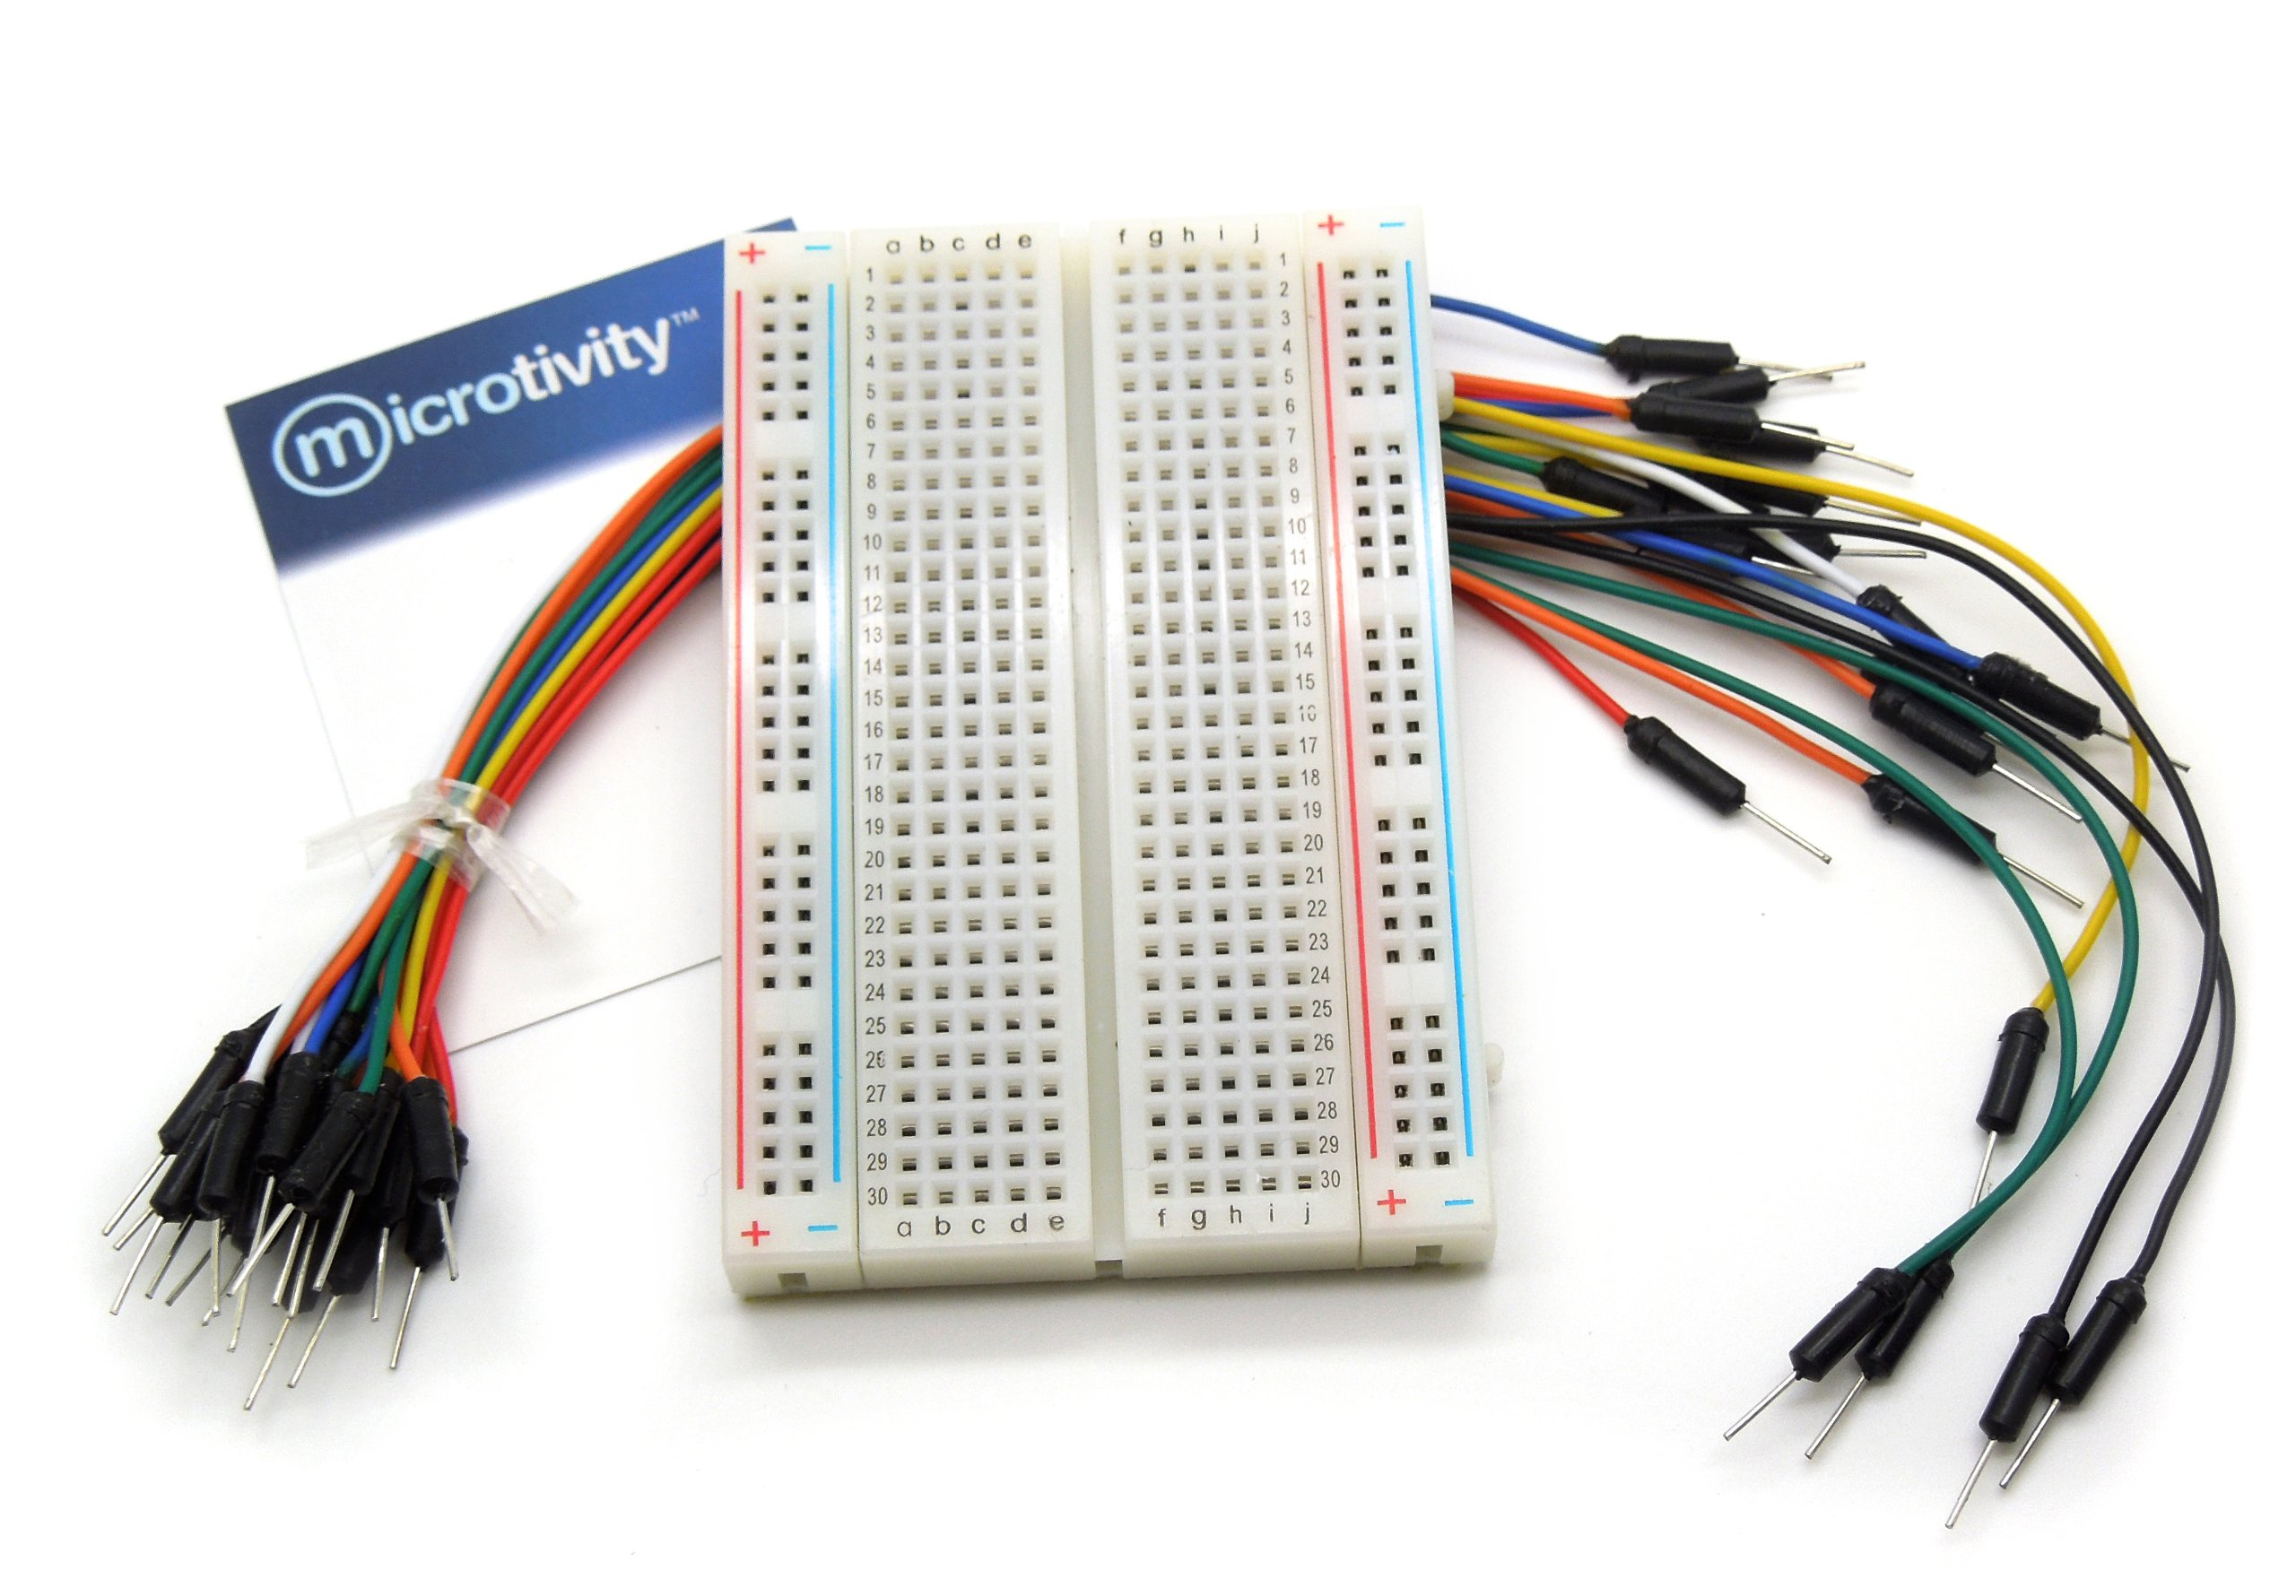 Microtivity Ib401 400 Point Experiment Breadboard W Capacitors And Resistors A Circuitbreadboard Wires Batteries Jumper Office Products